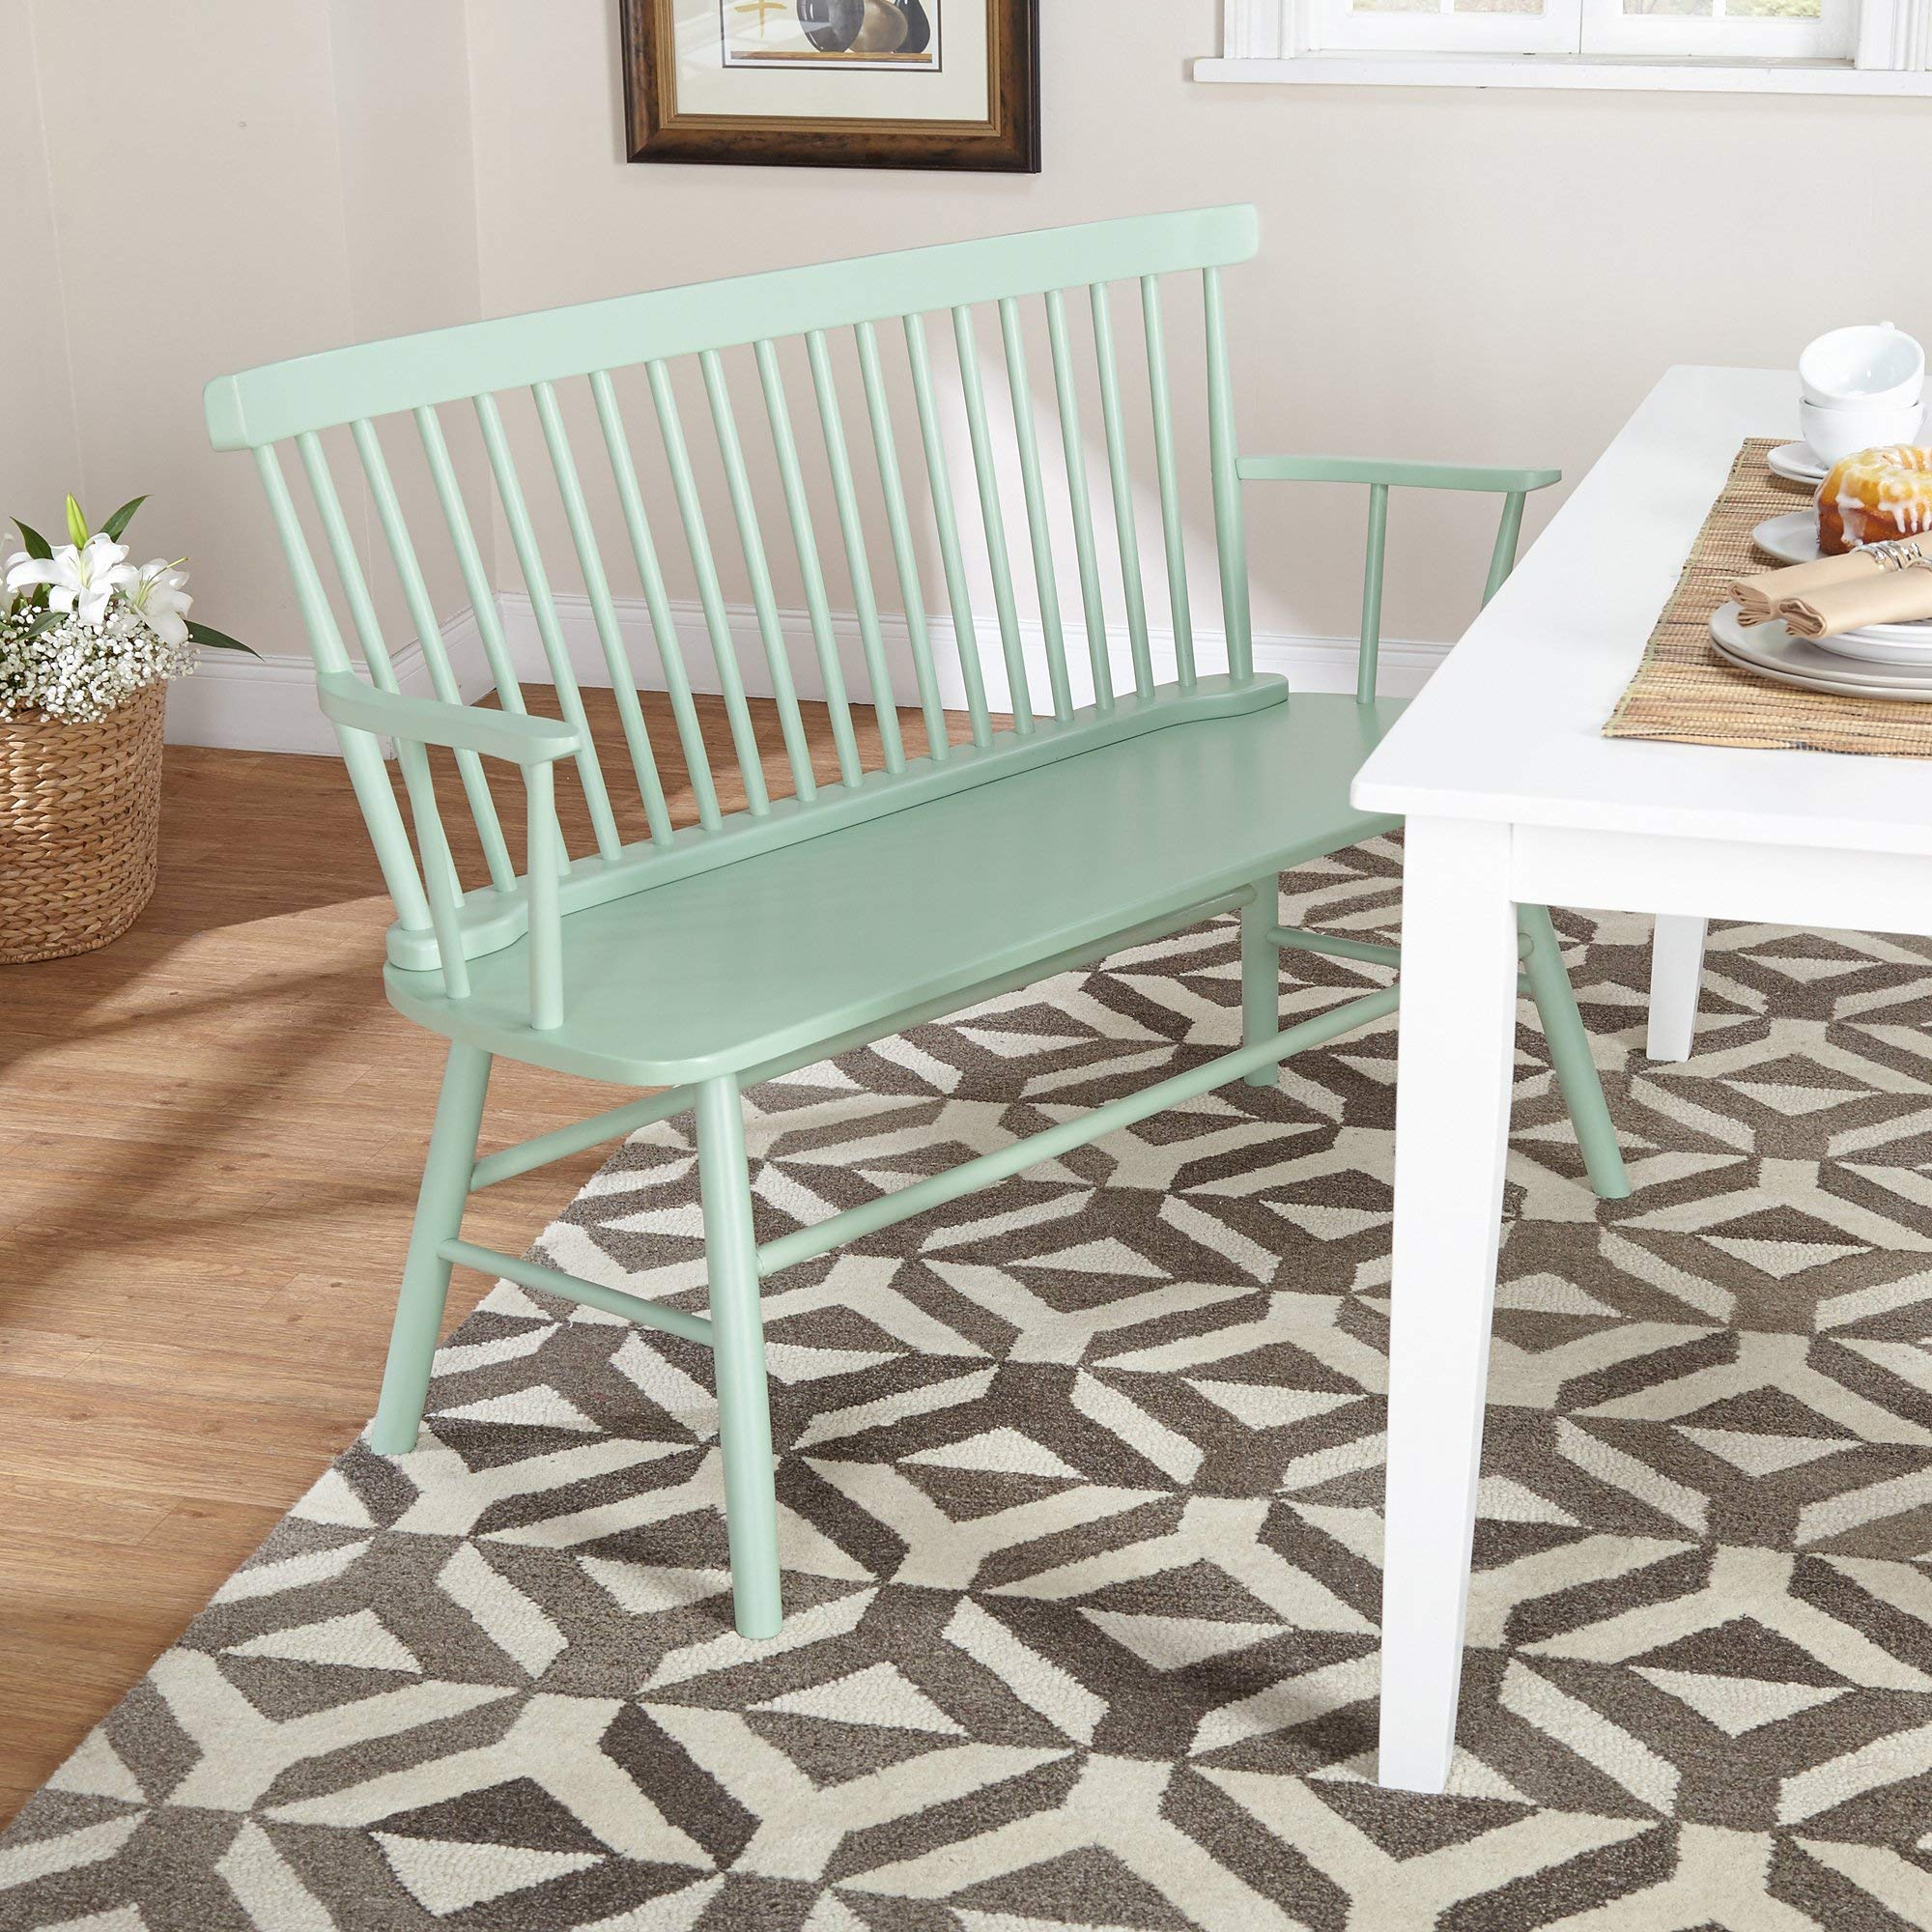 Target Marketing Systems Shelby Wooden Bench with Spindle Back and Arms, Mint by Target Marketing Systems (Image #2)